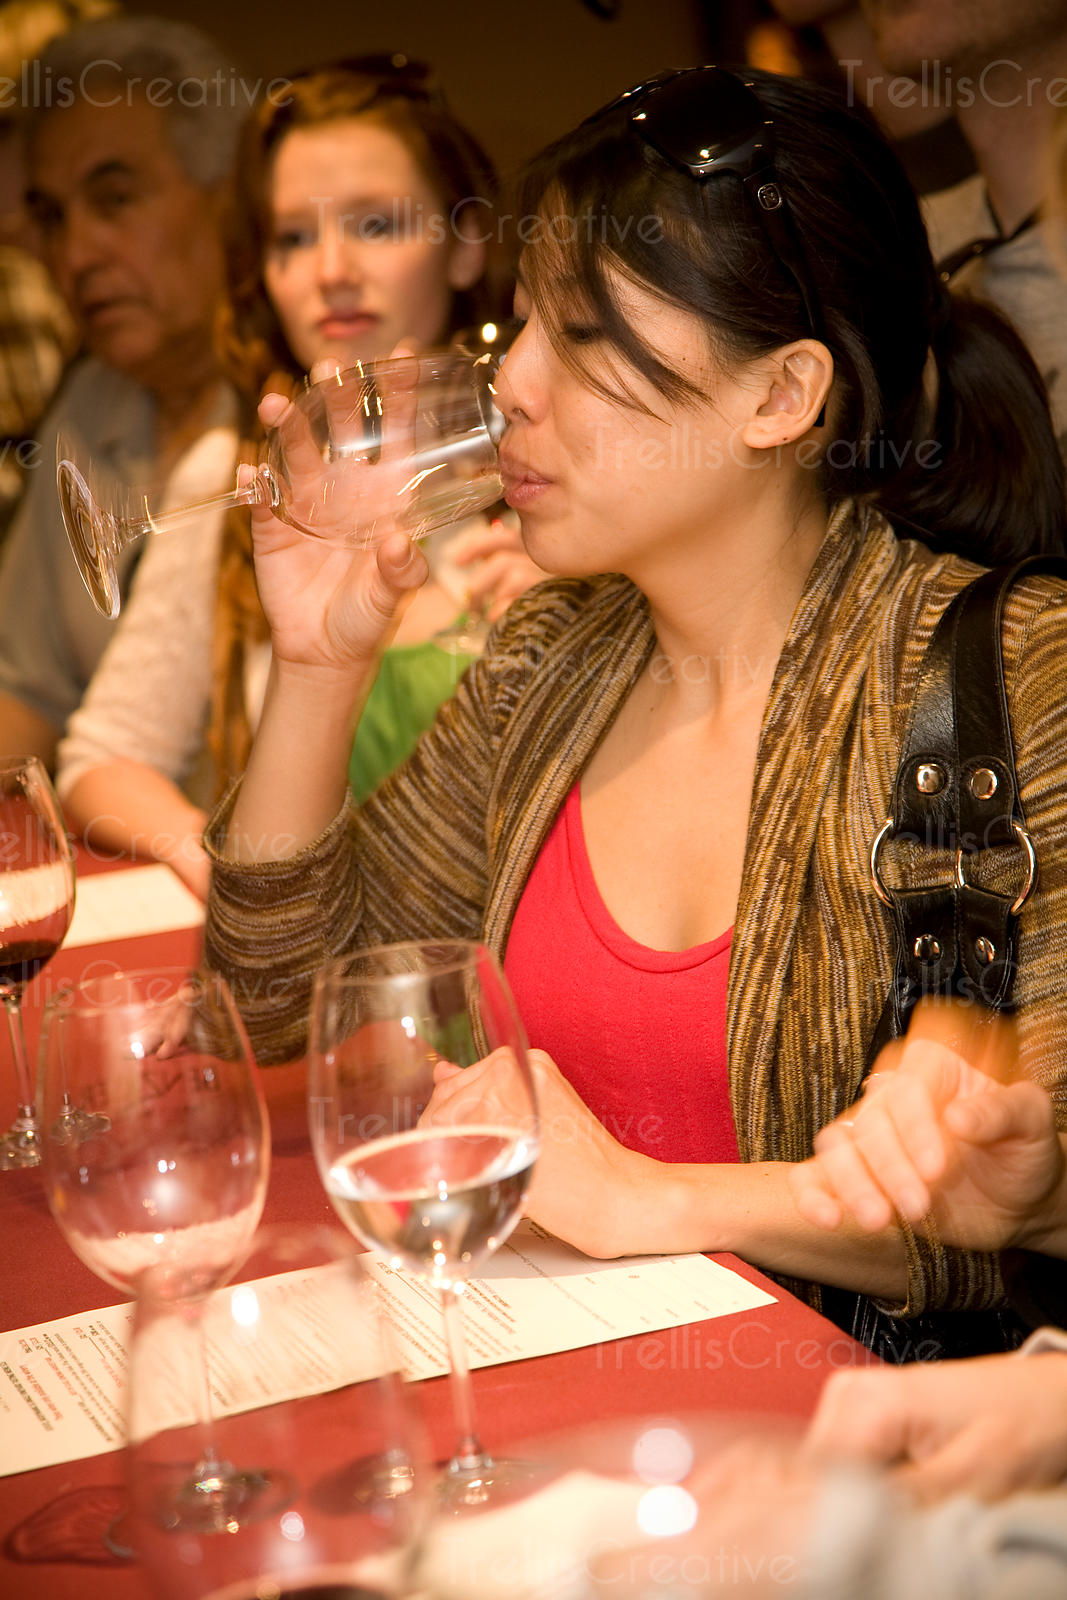 A young Asian woman drinks wine in a winery tasting room